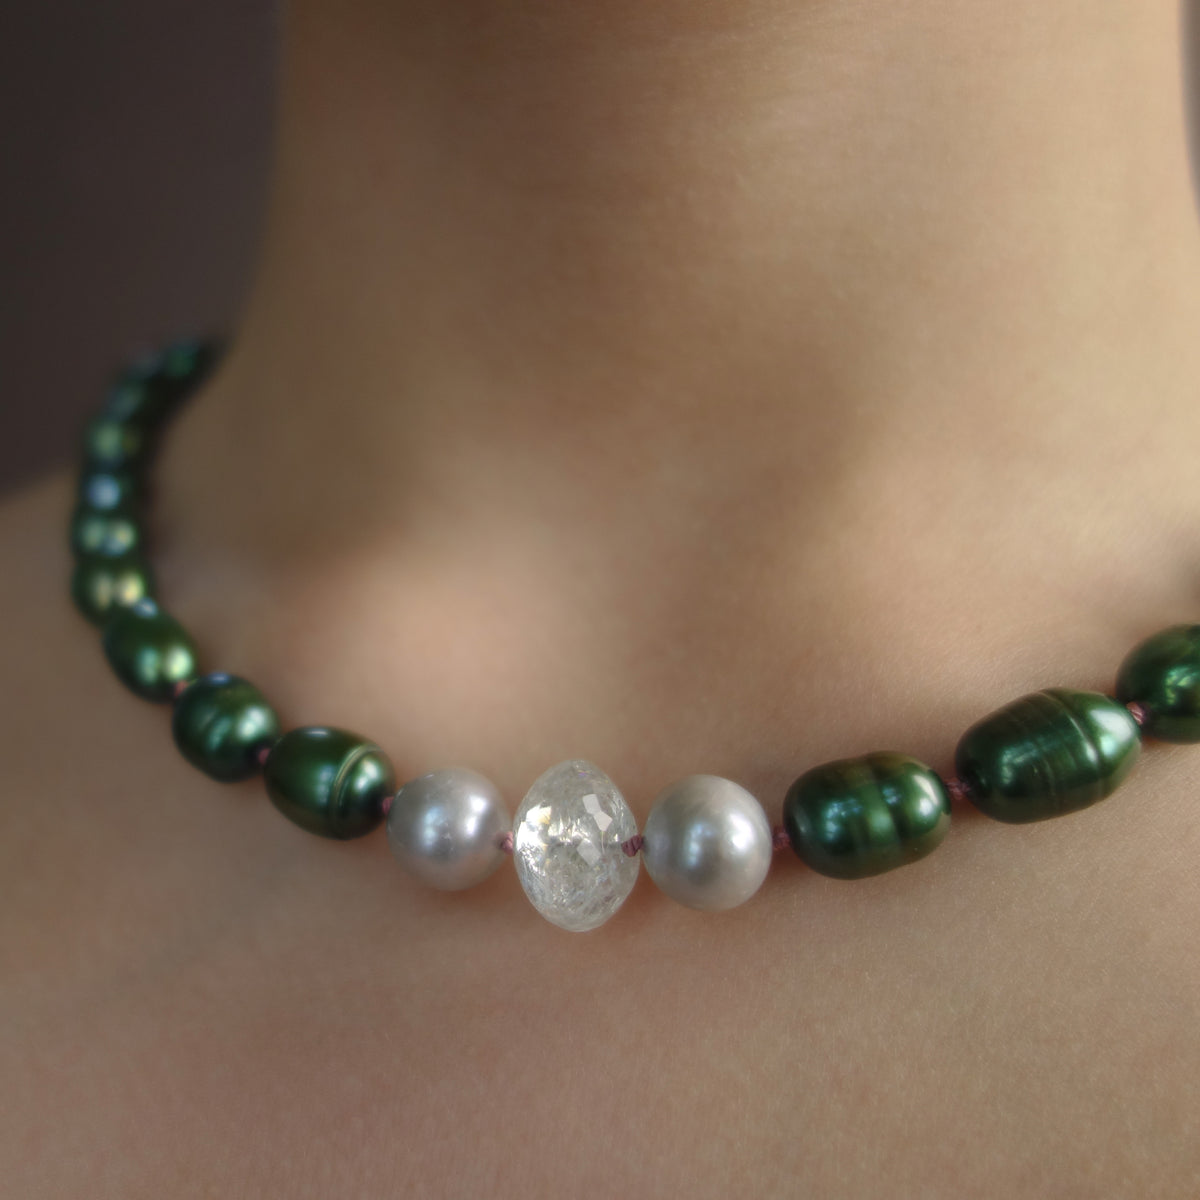 Emerald South Sea Pearl with Aquamarine necklace